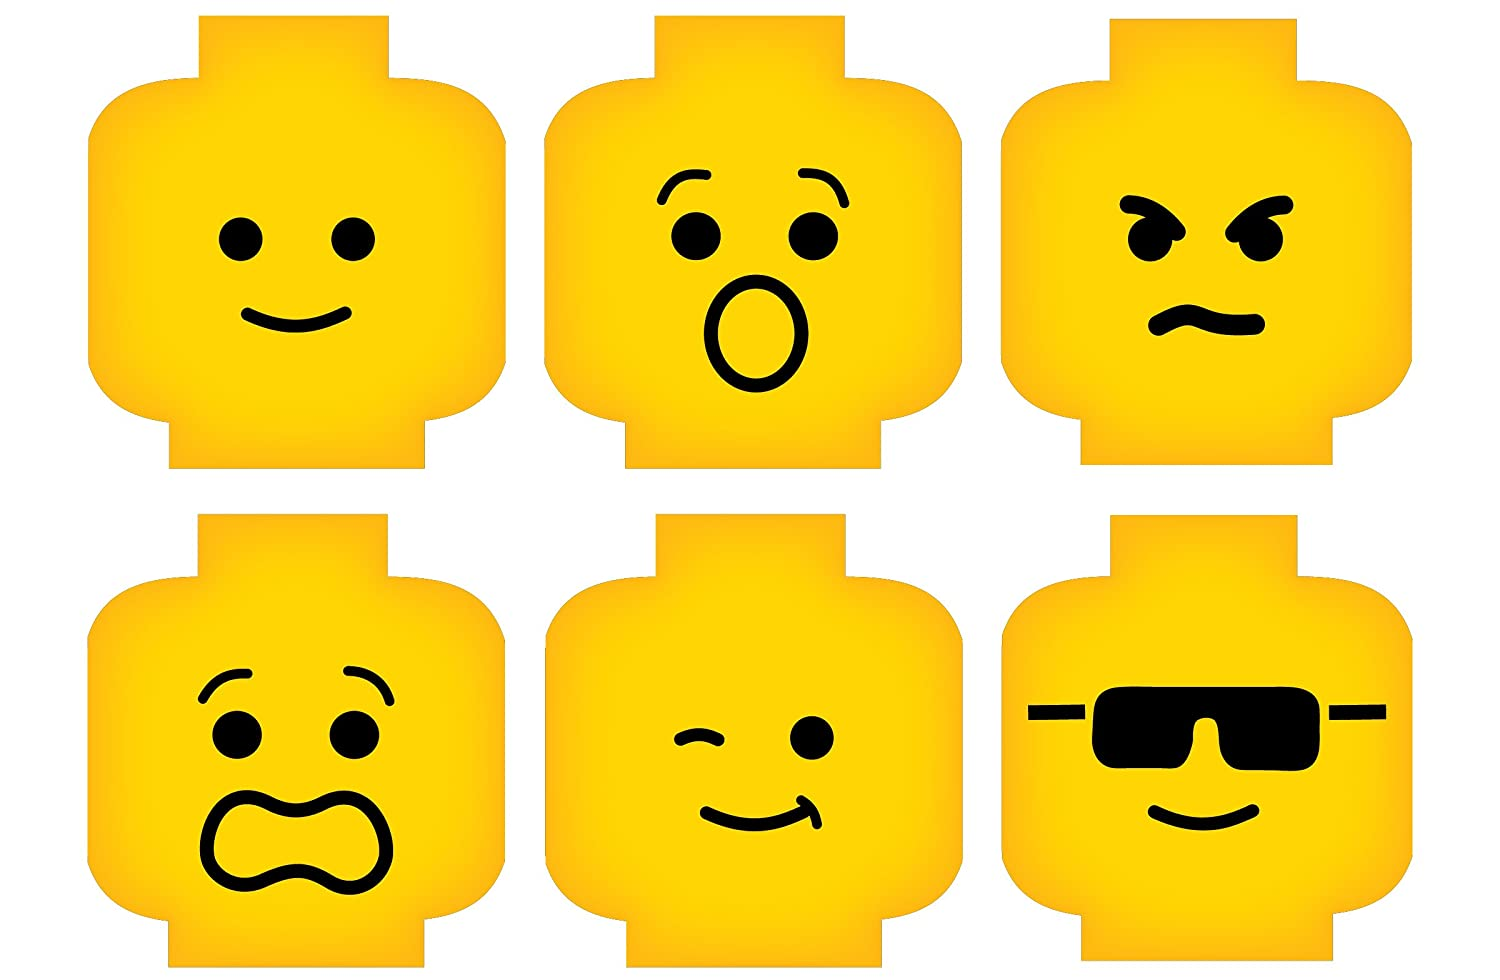 photograph relating to Lego Faces Printable referred to as Minifig Heads Experience Deal with Wall Decor Vinyl Decal Electronic Print Impression for Oneself Youngsters Brick Topic Space 2469 (Very low - 15.5 x 11 (5inside of ea))